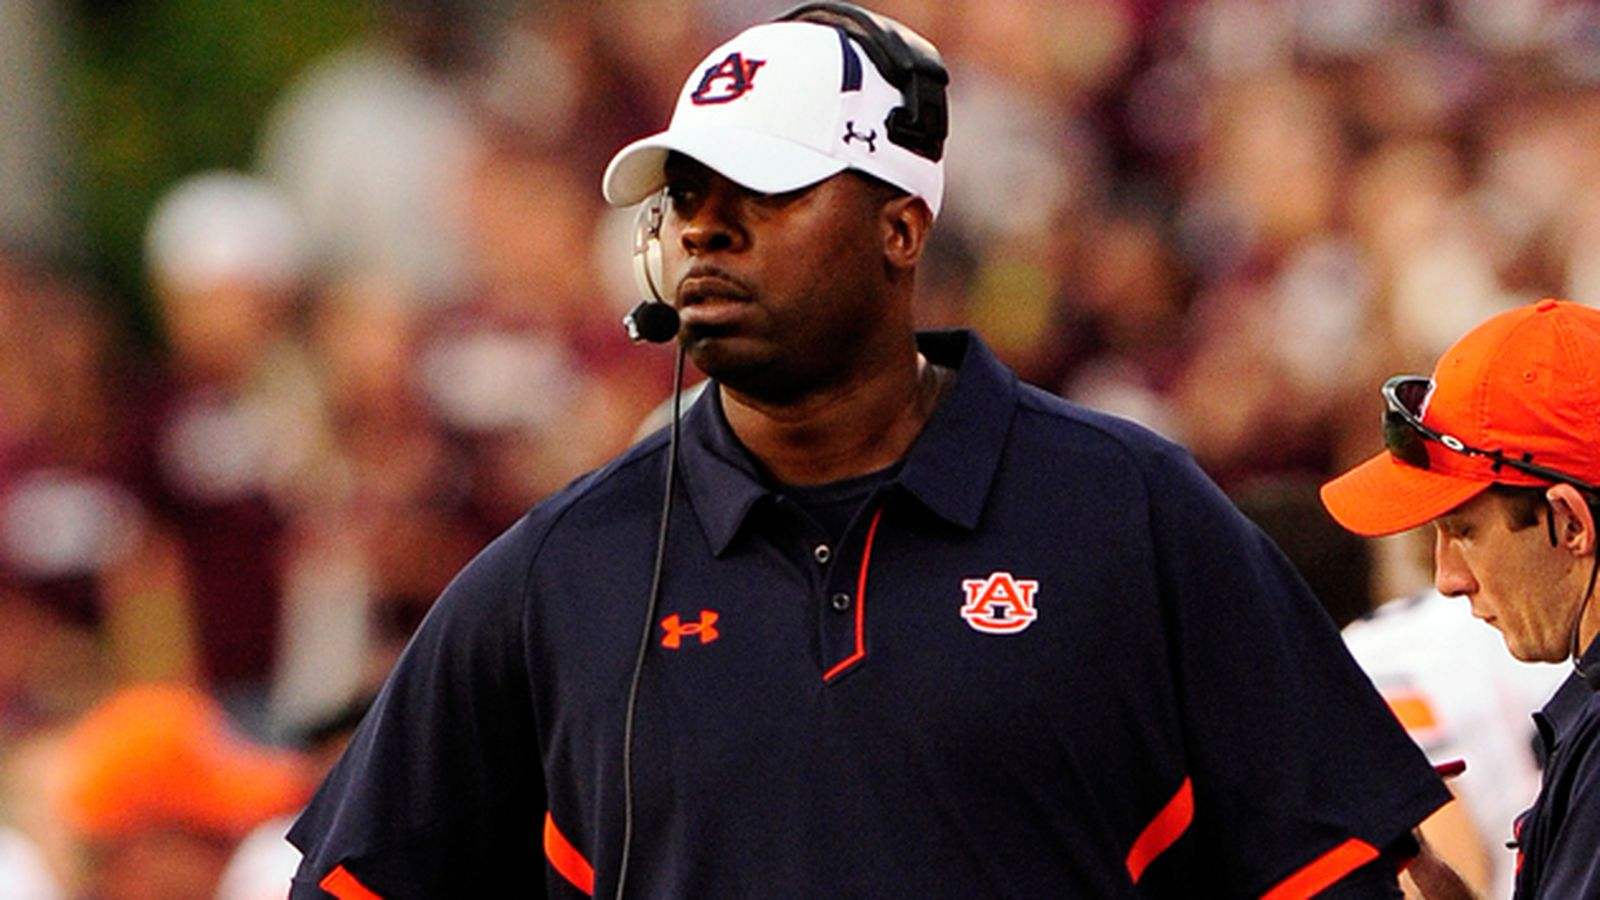 OU Football 2013 | Sooners Tab Former Auburn Assistant To ...